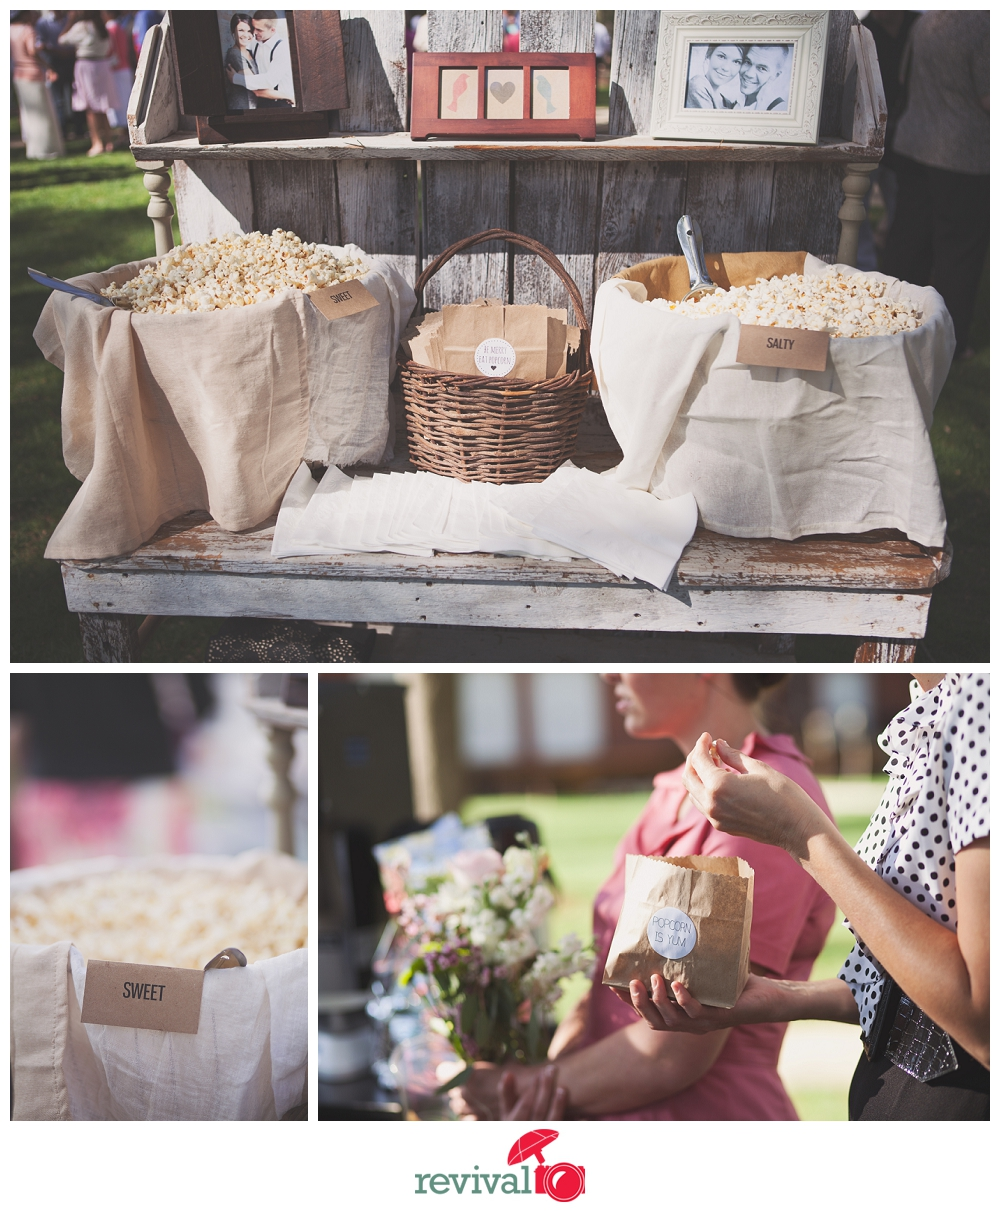 Creative ideas for your wedding How to Plan a DIY Vintage Rustic Chic Wedding Keeping it Thrifty Photos by Revival Photography Photo